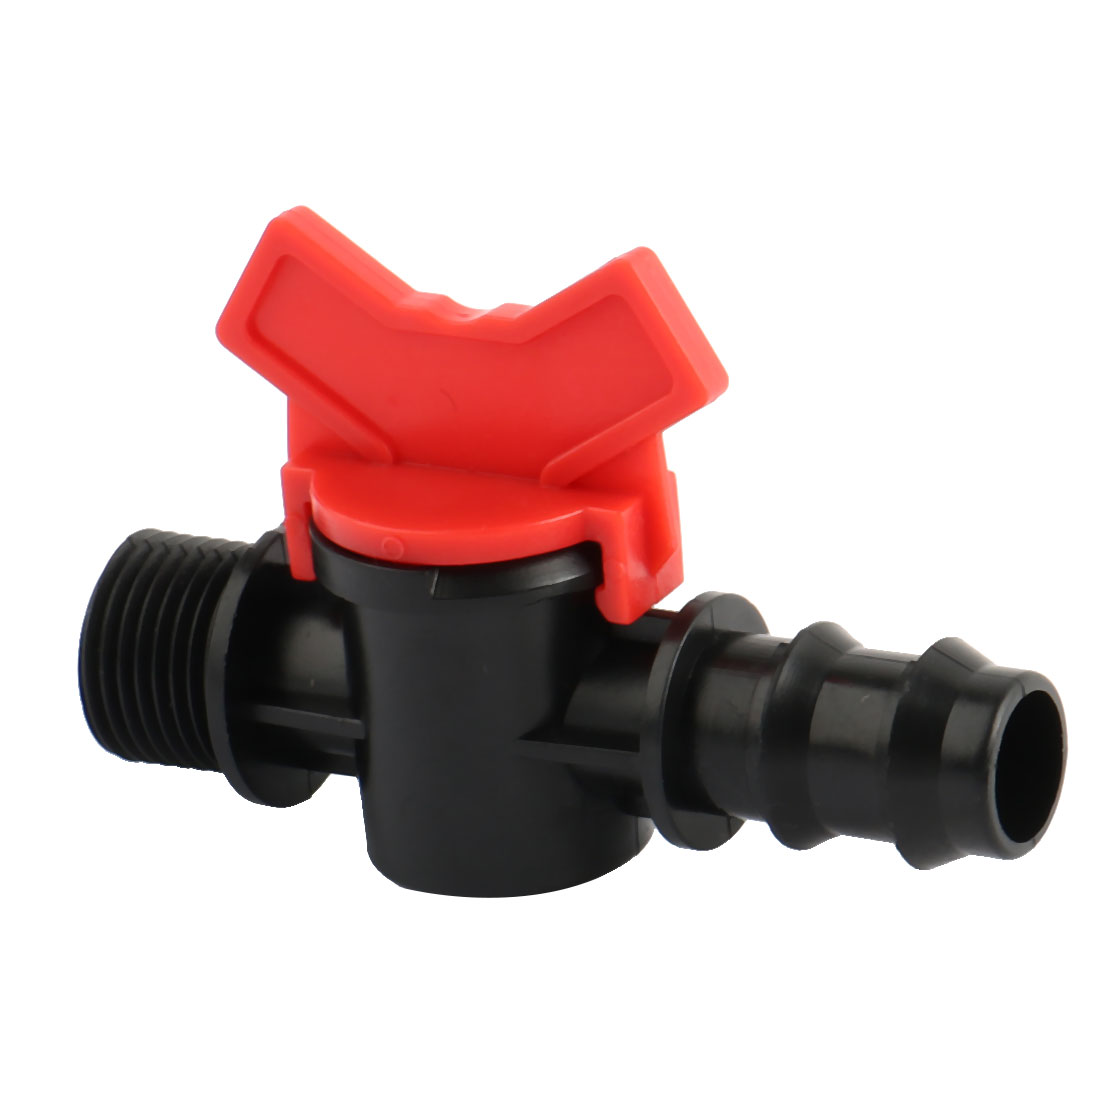 Kitchen Plastic Water Flow Supplies Regulating Knob Tap Ball Valve Red Black